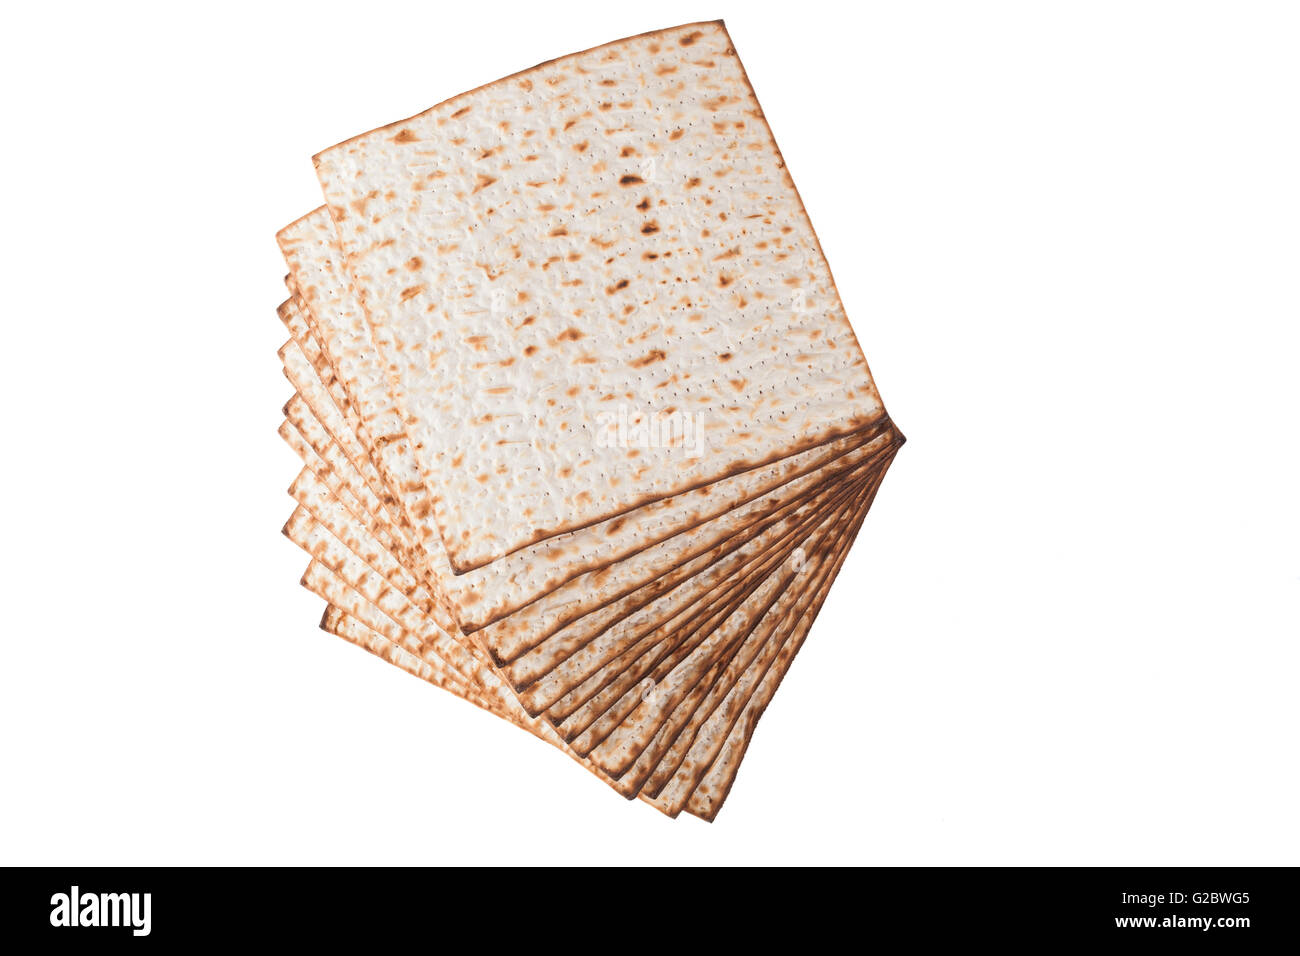 Matzot for pesach isolated on white background - Stock Image